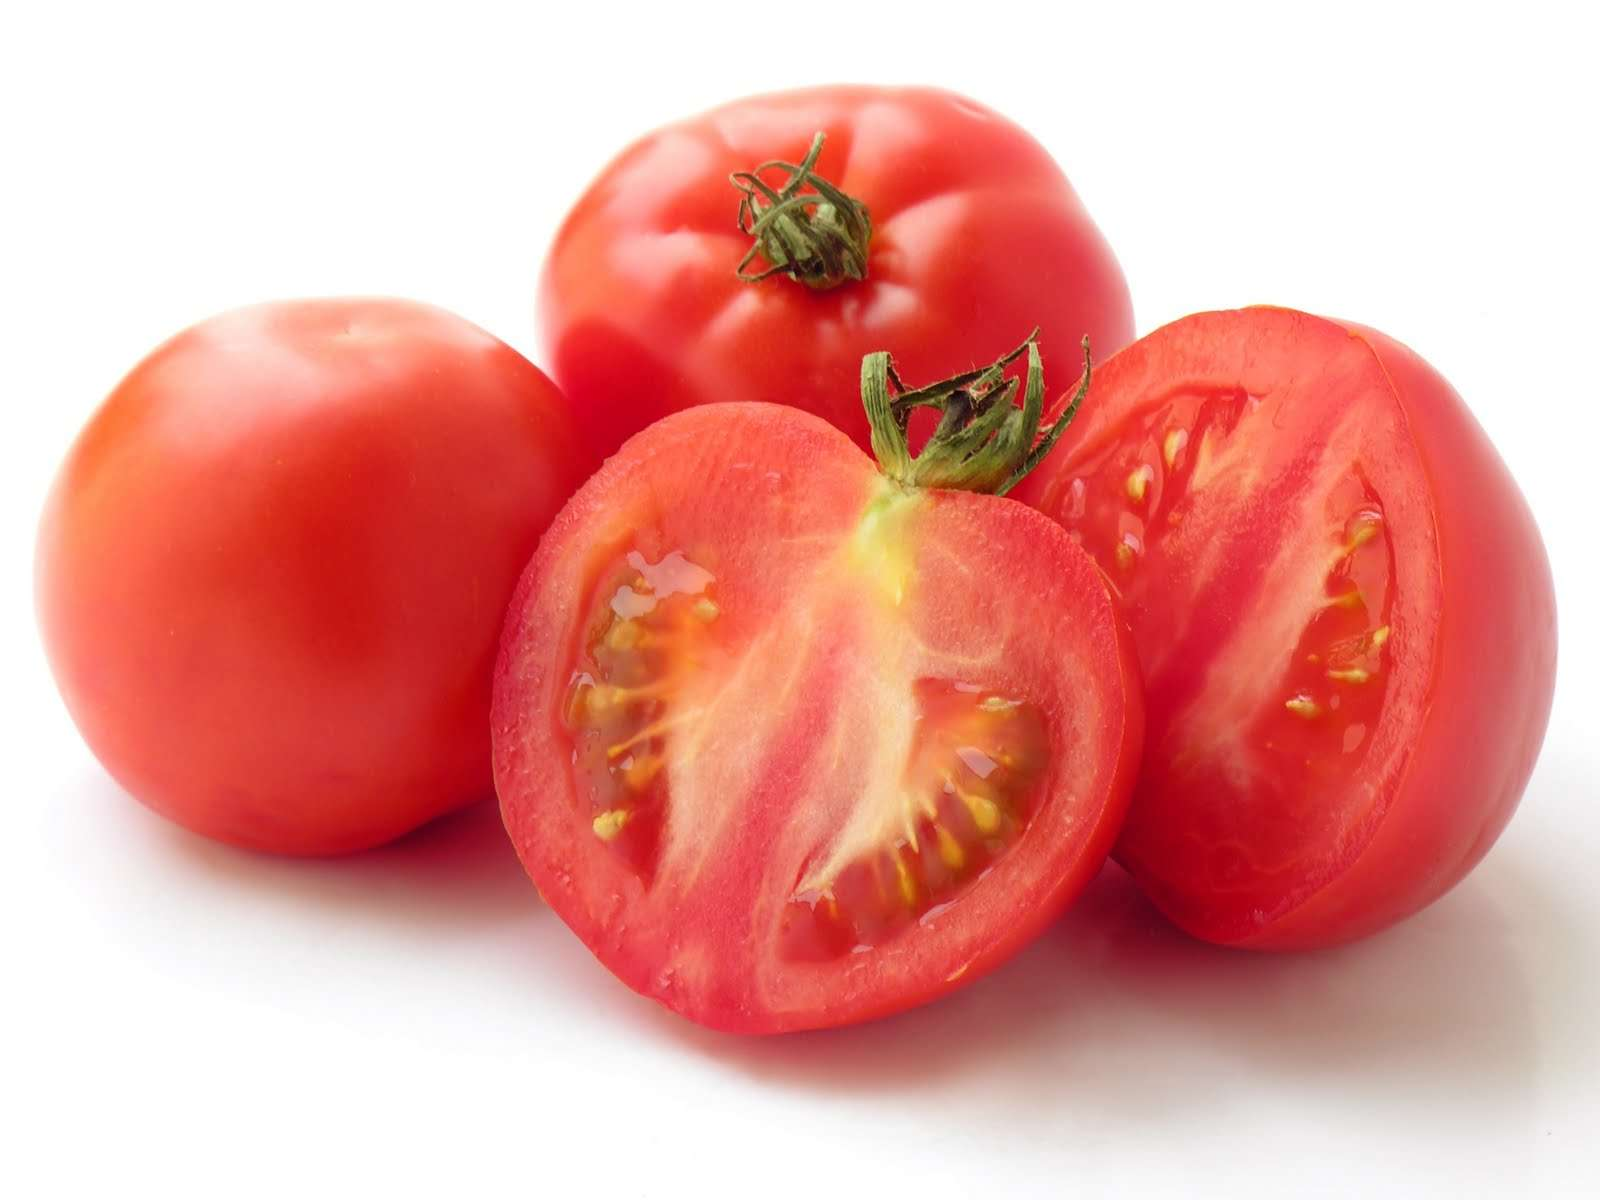 Want to cut tomatoes like a pro